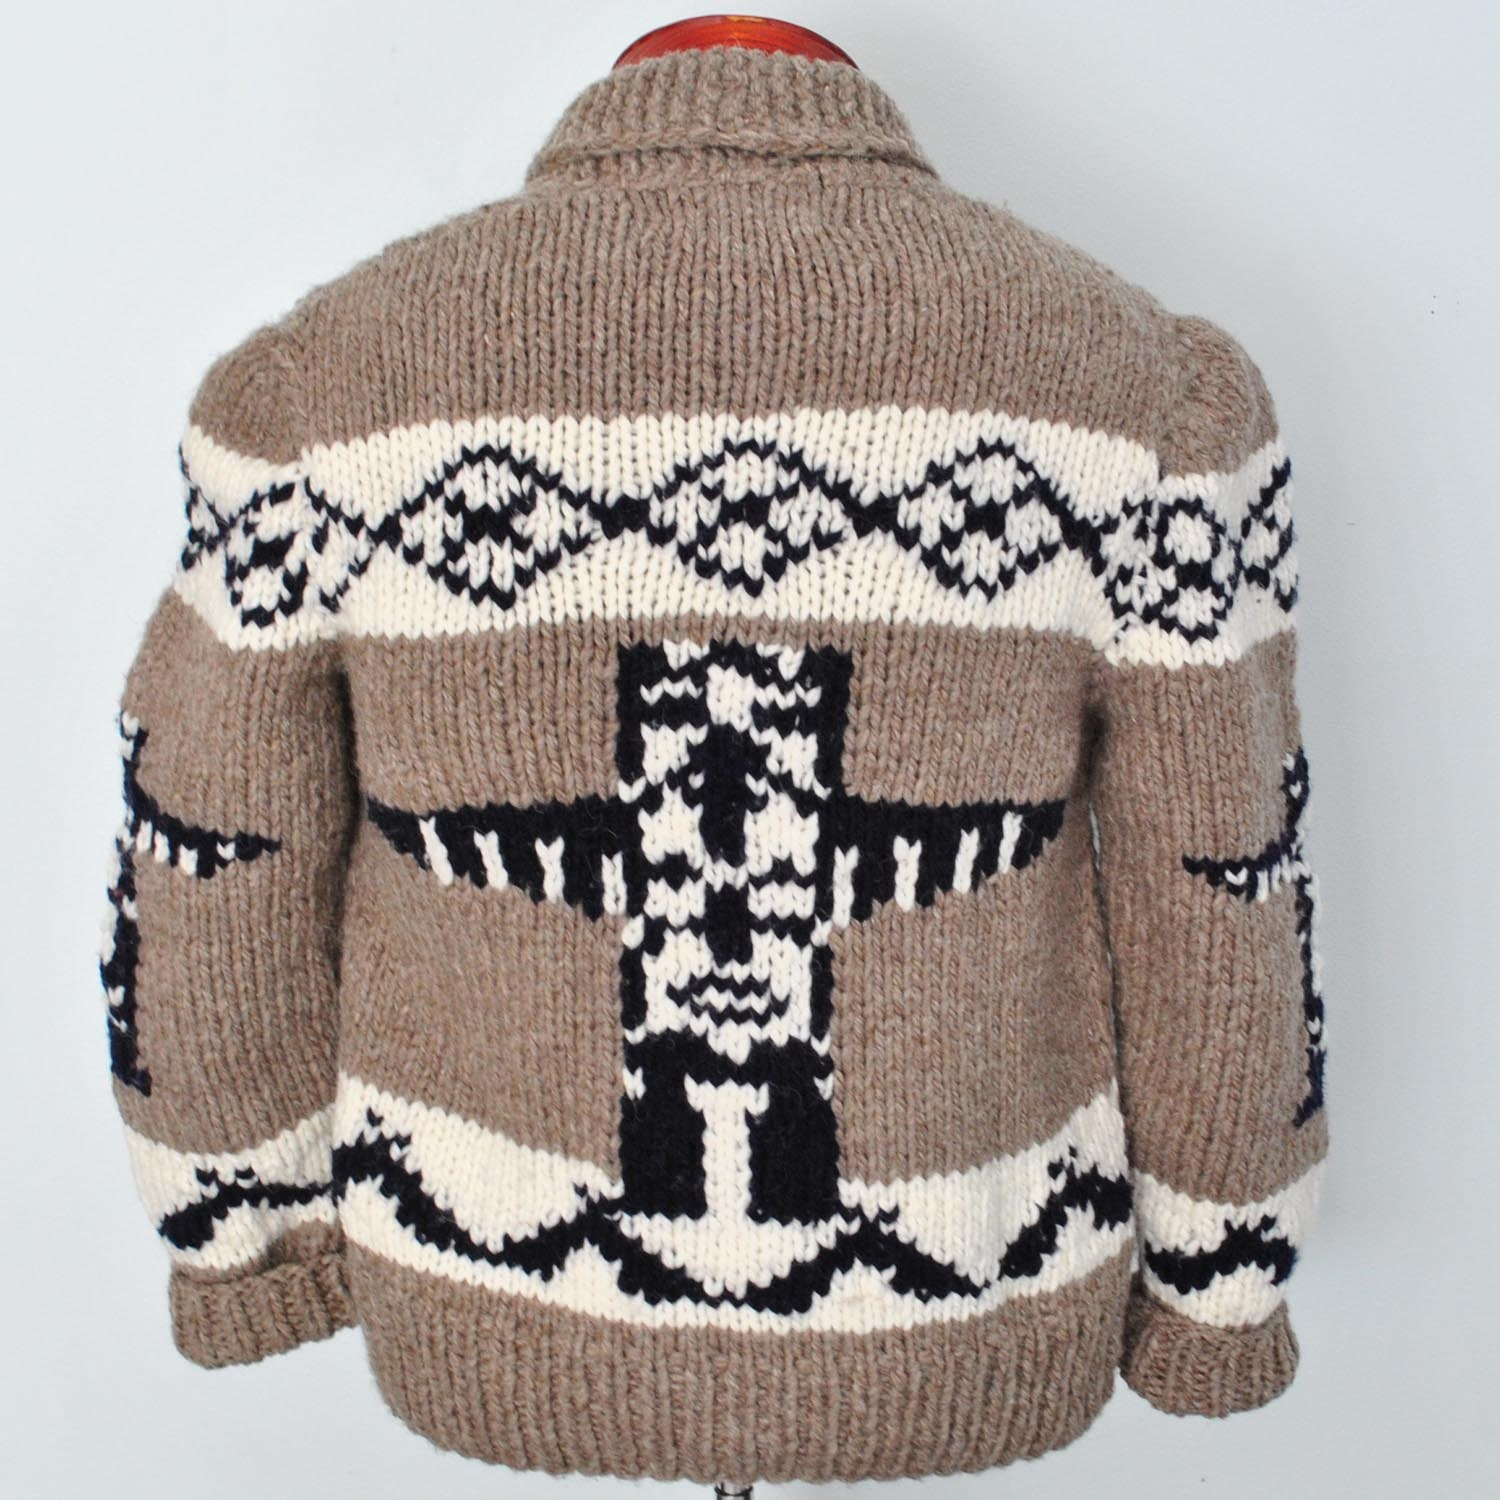 Knitting Websites Canada : Cowichan sweater totem cardigan new hand knit by